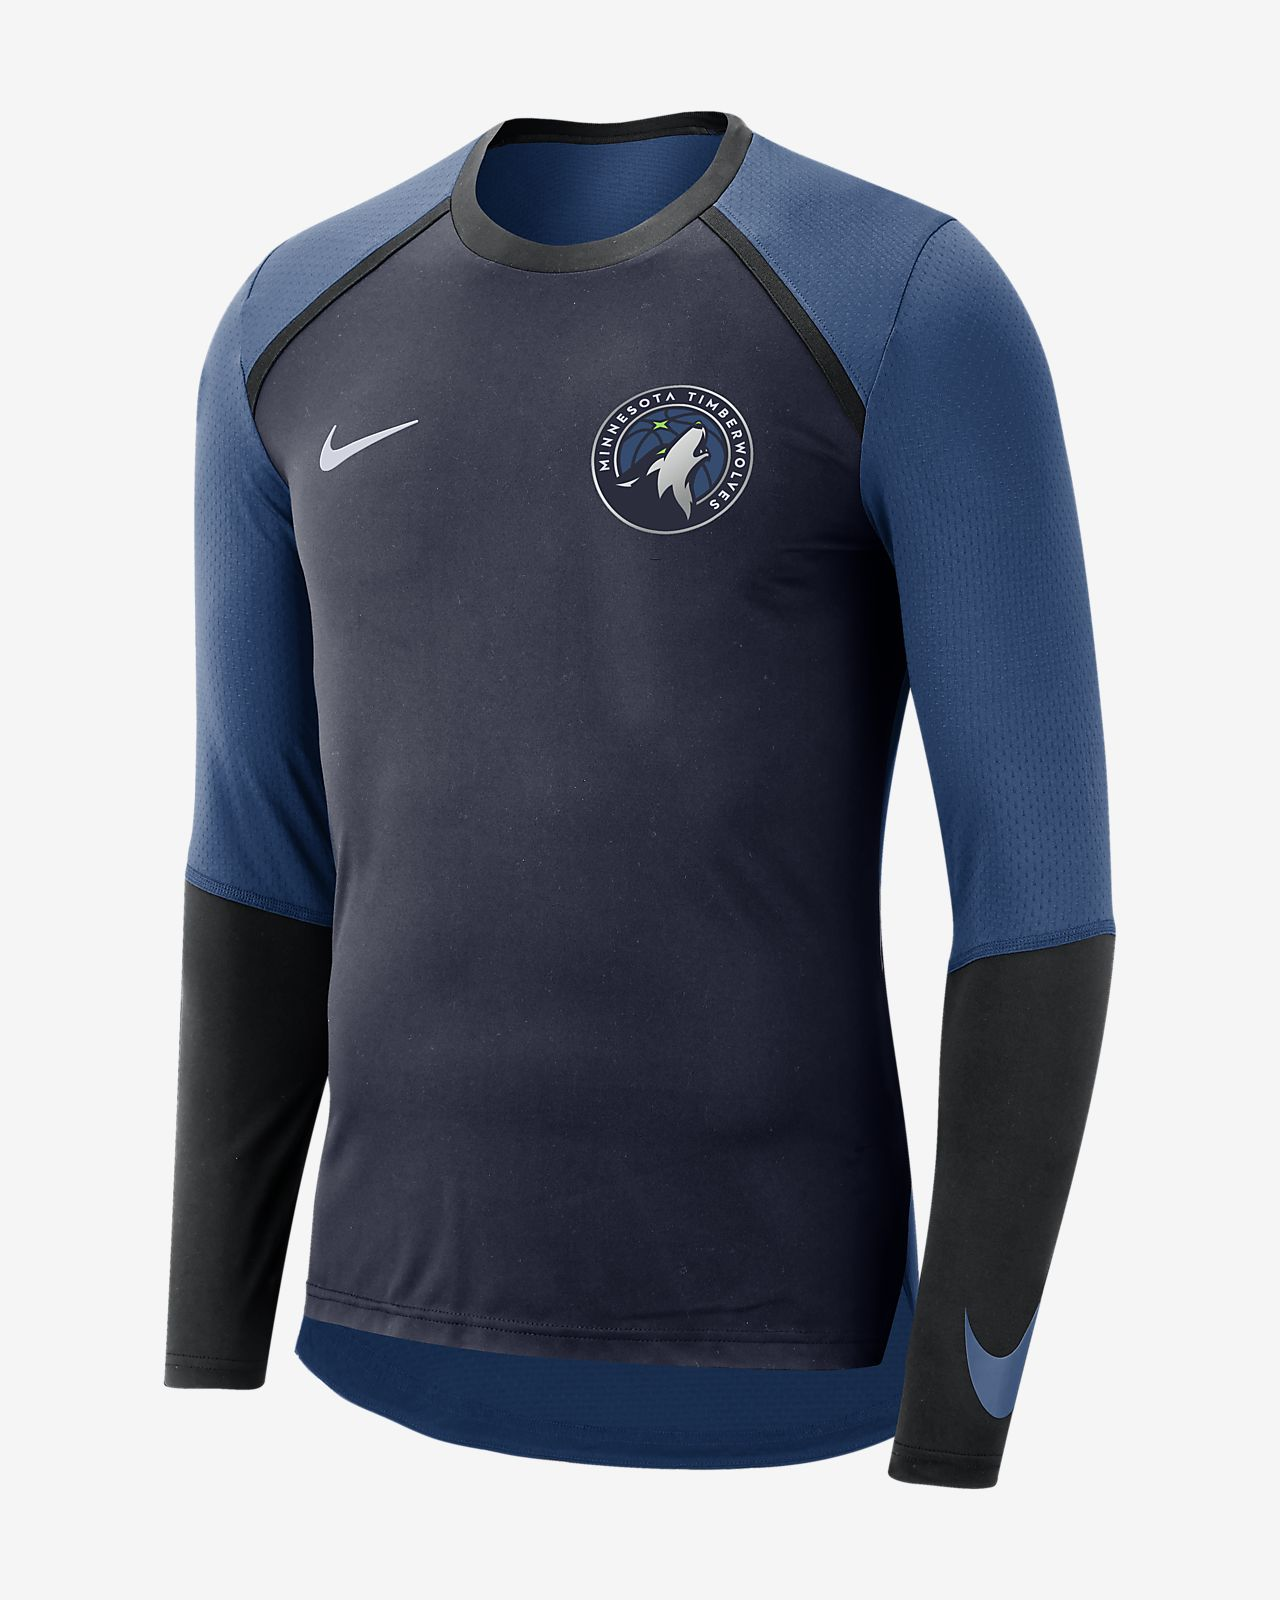 Minnesota Timberwolves Nike Dri-FIT Men's Long-Sleeve NBA Top